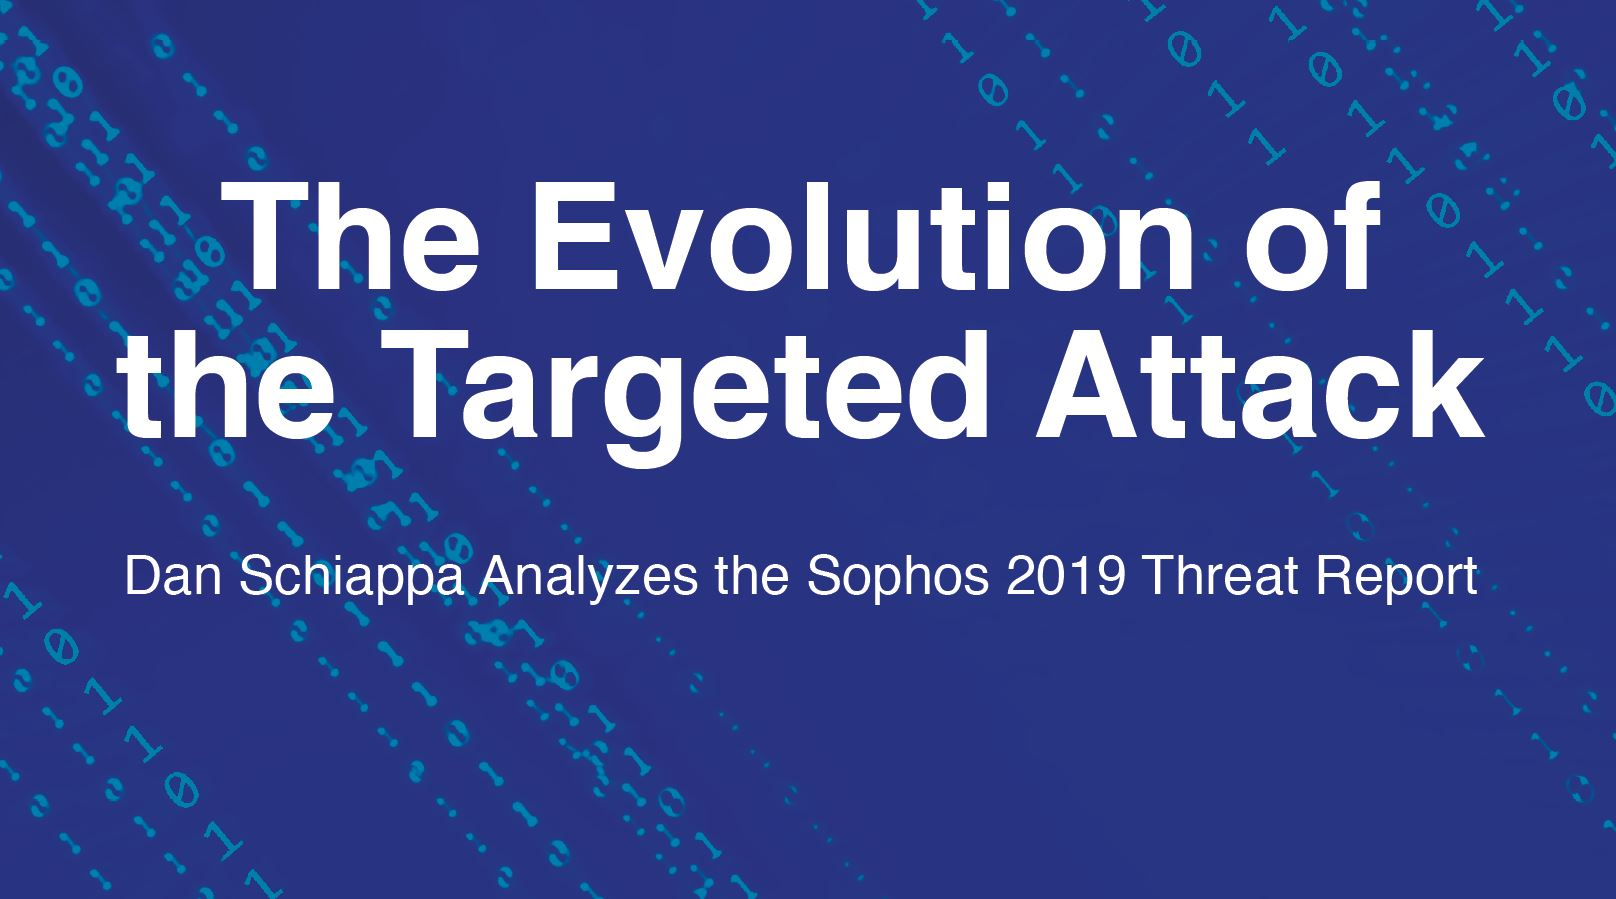 The Evolution of the Targeted Attack